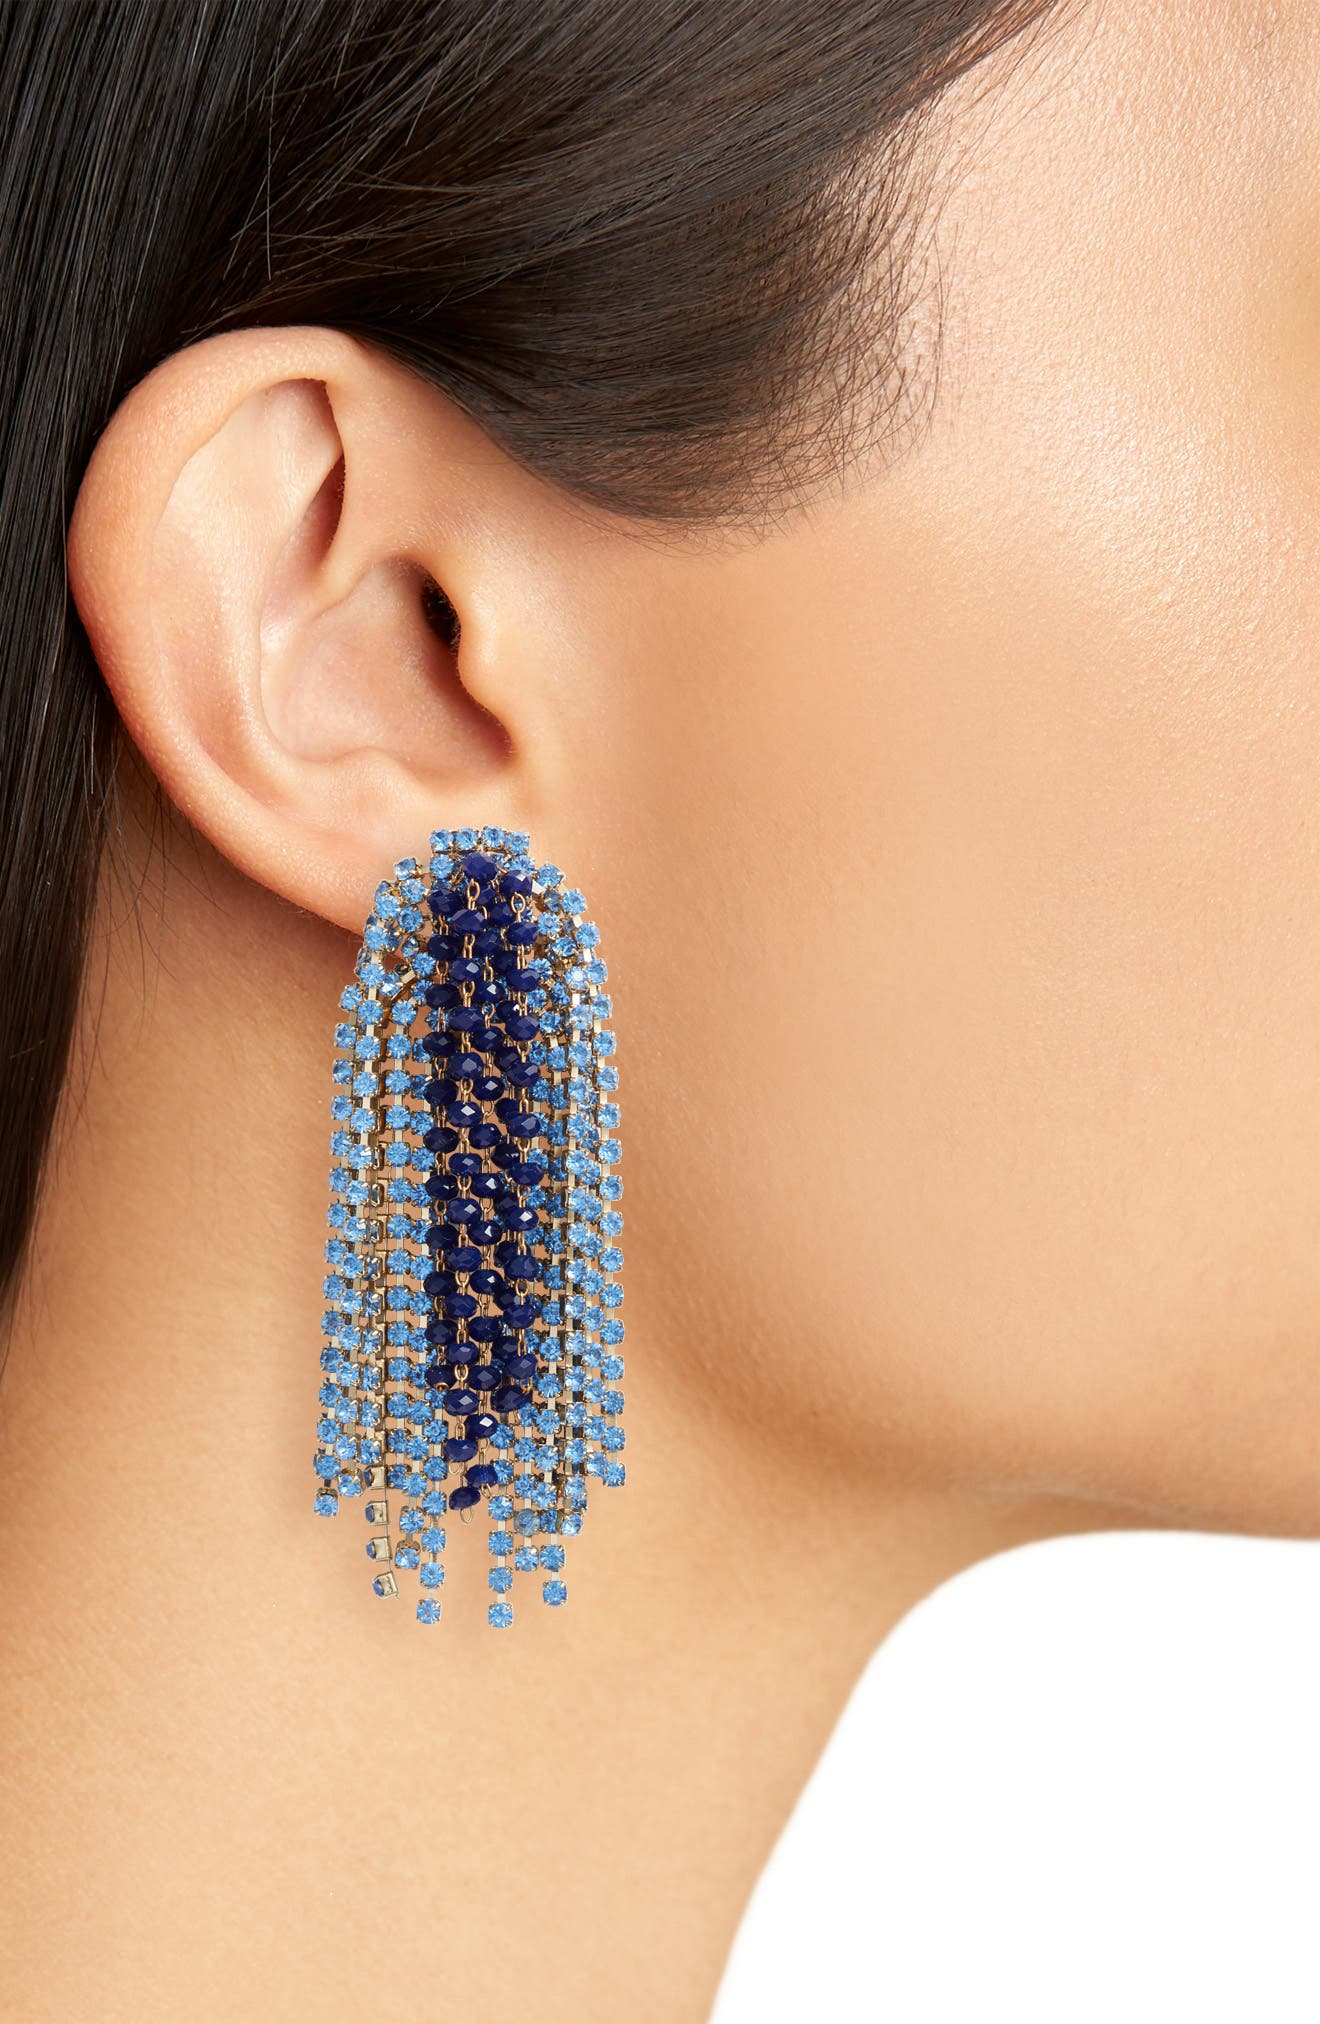 Crystal Statement Earrings,                             Alternate thumbnail 2, color,                             NAVY